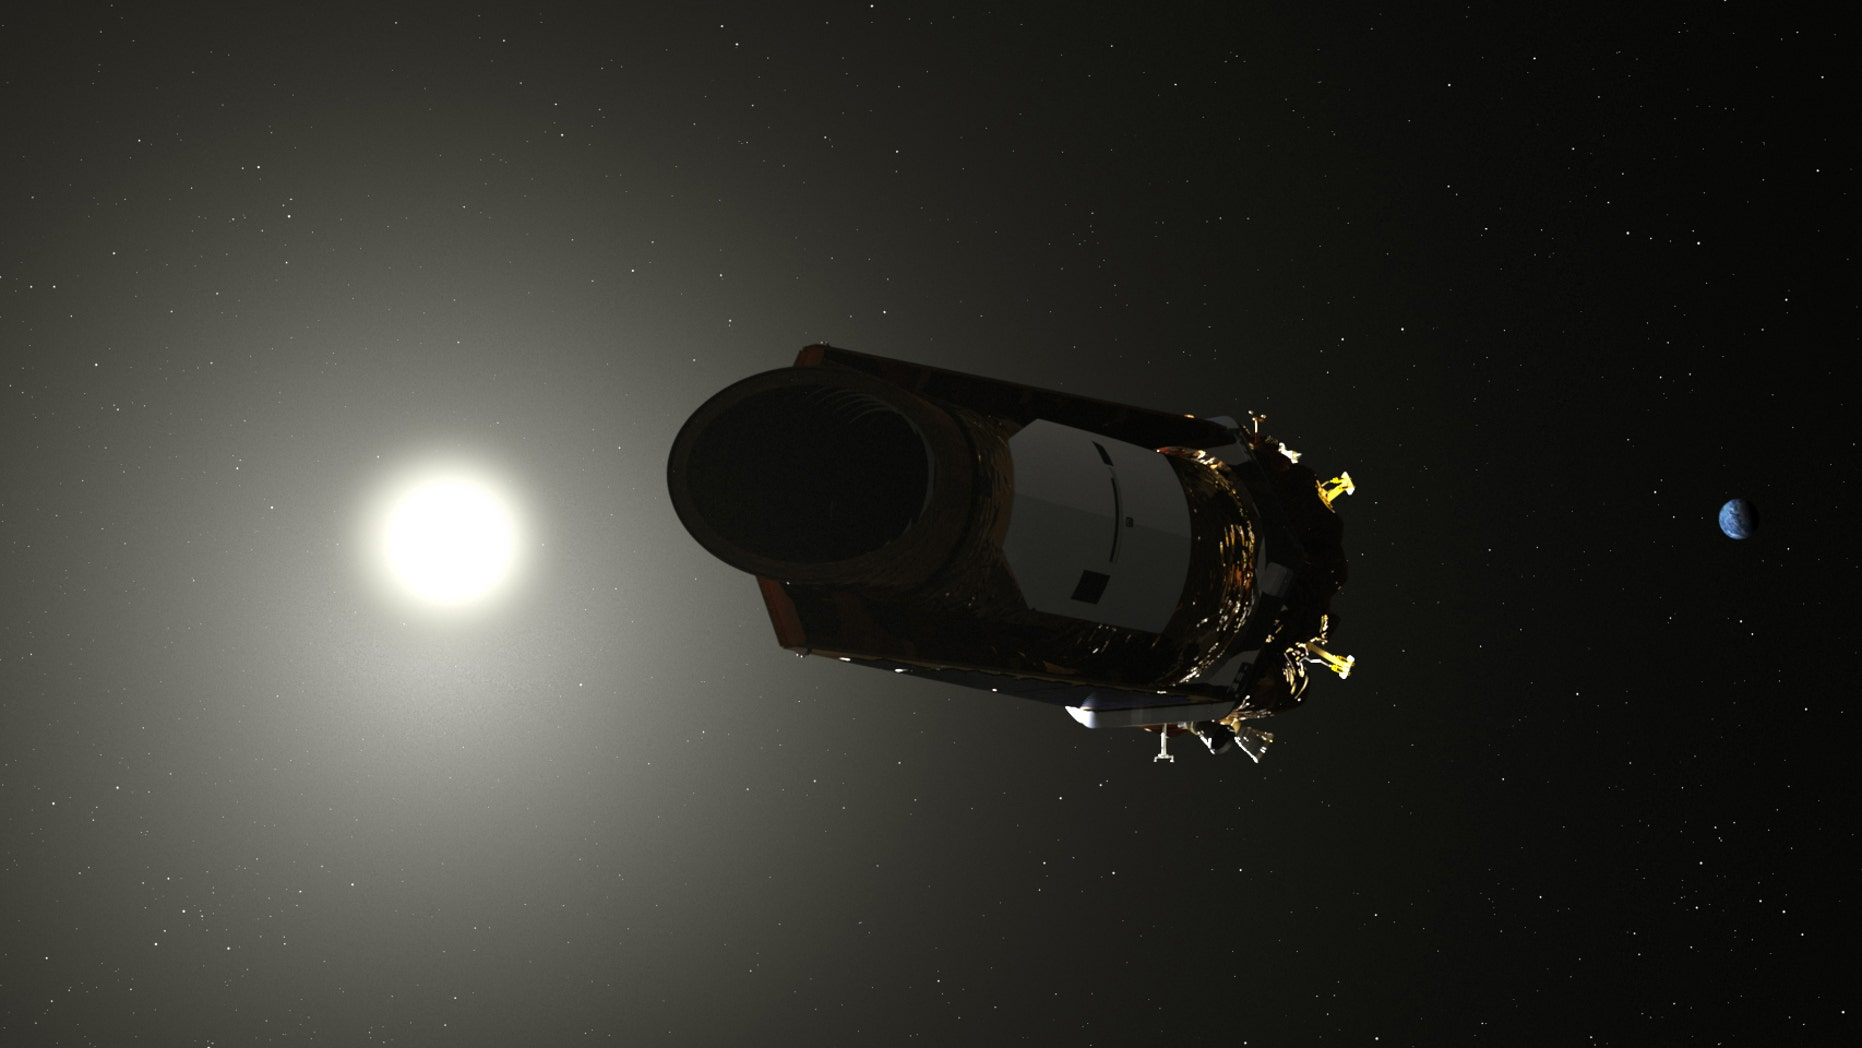 An artist's illustration of NASA's Kepler space telescope, which has discovered about 70 percent of all known exoplanets to date.